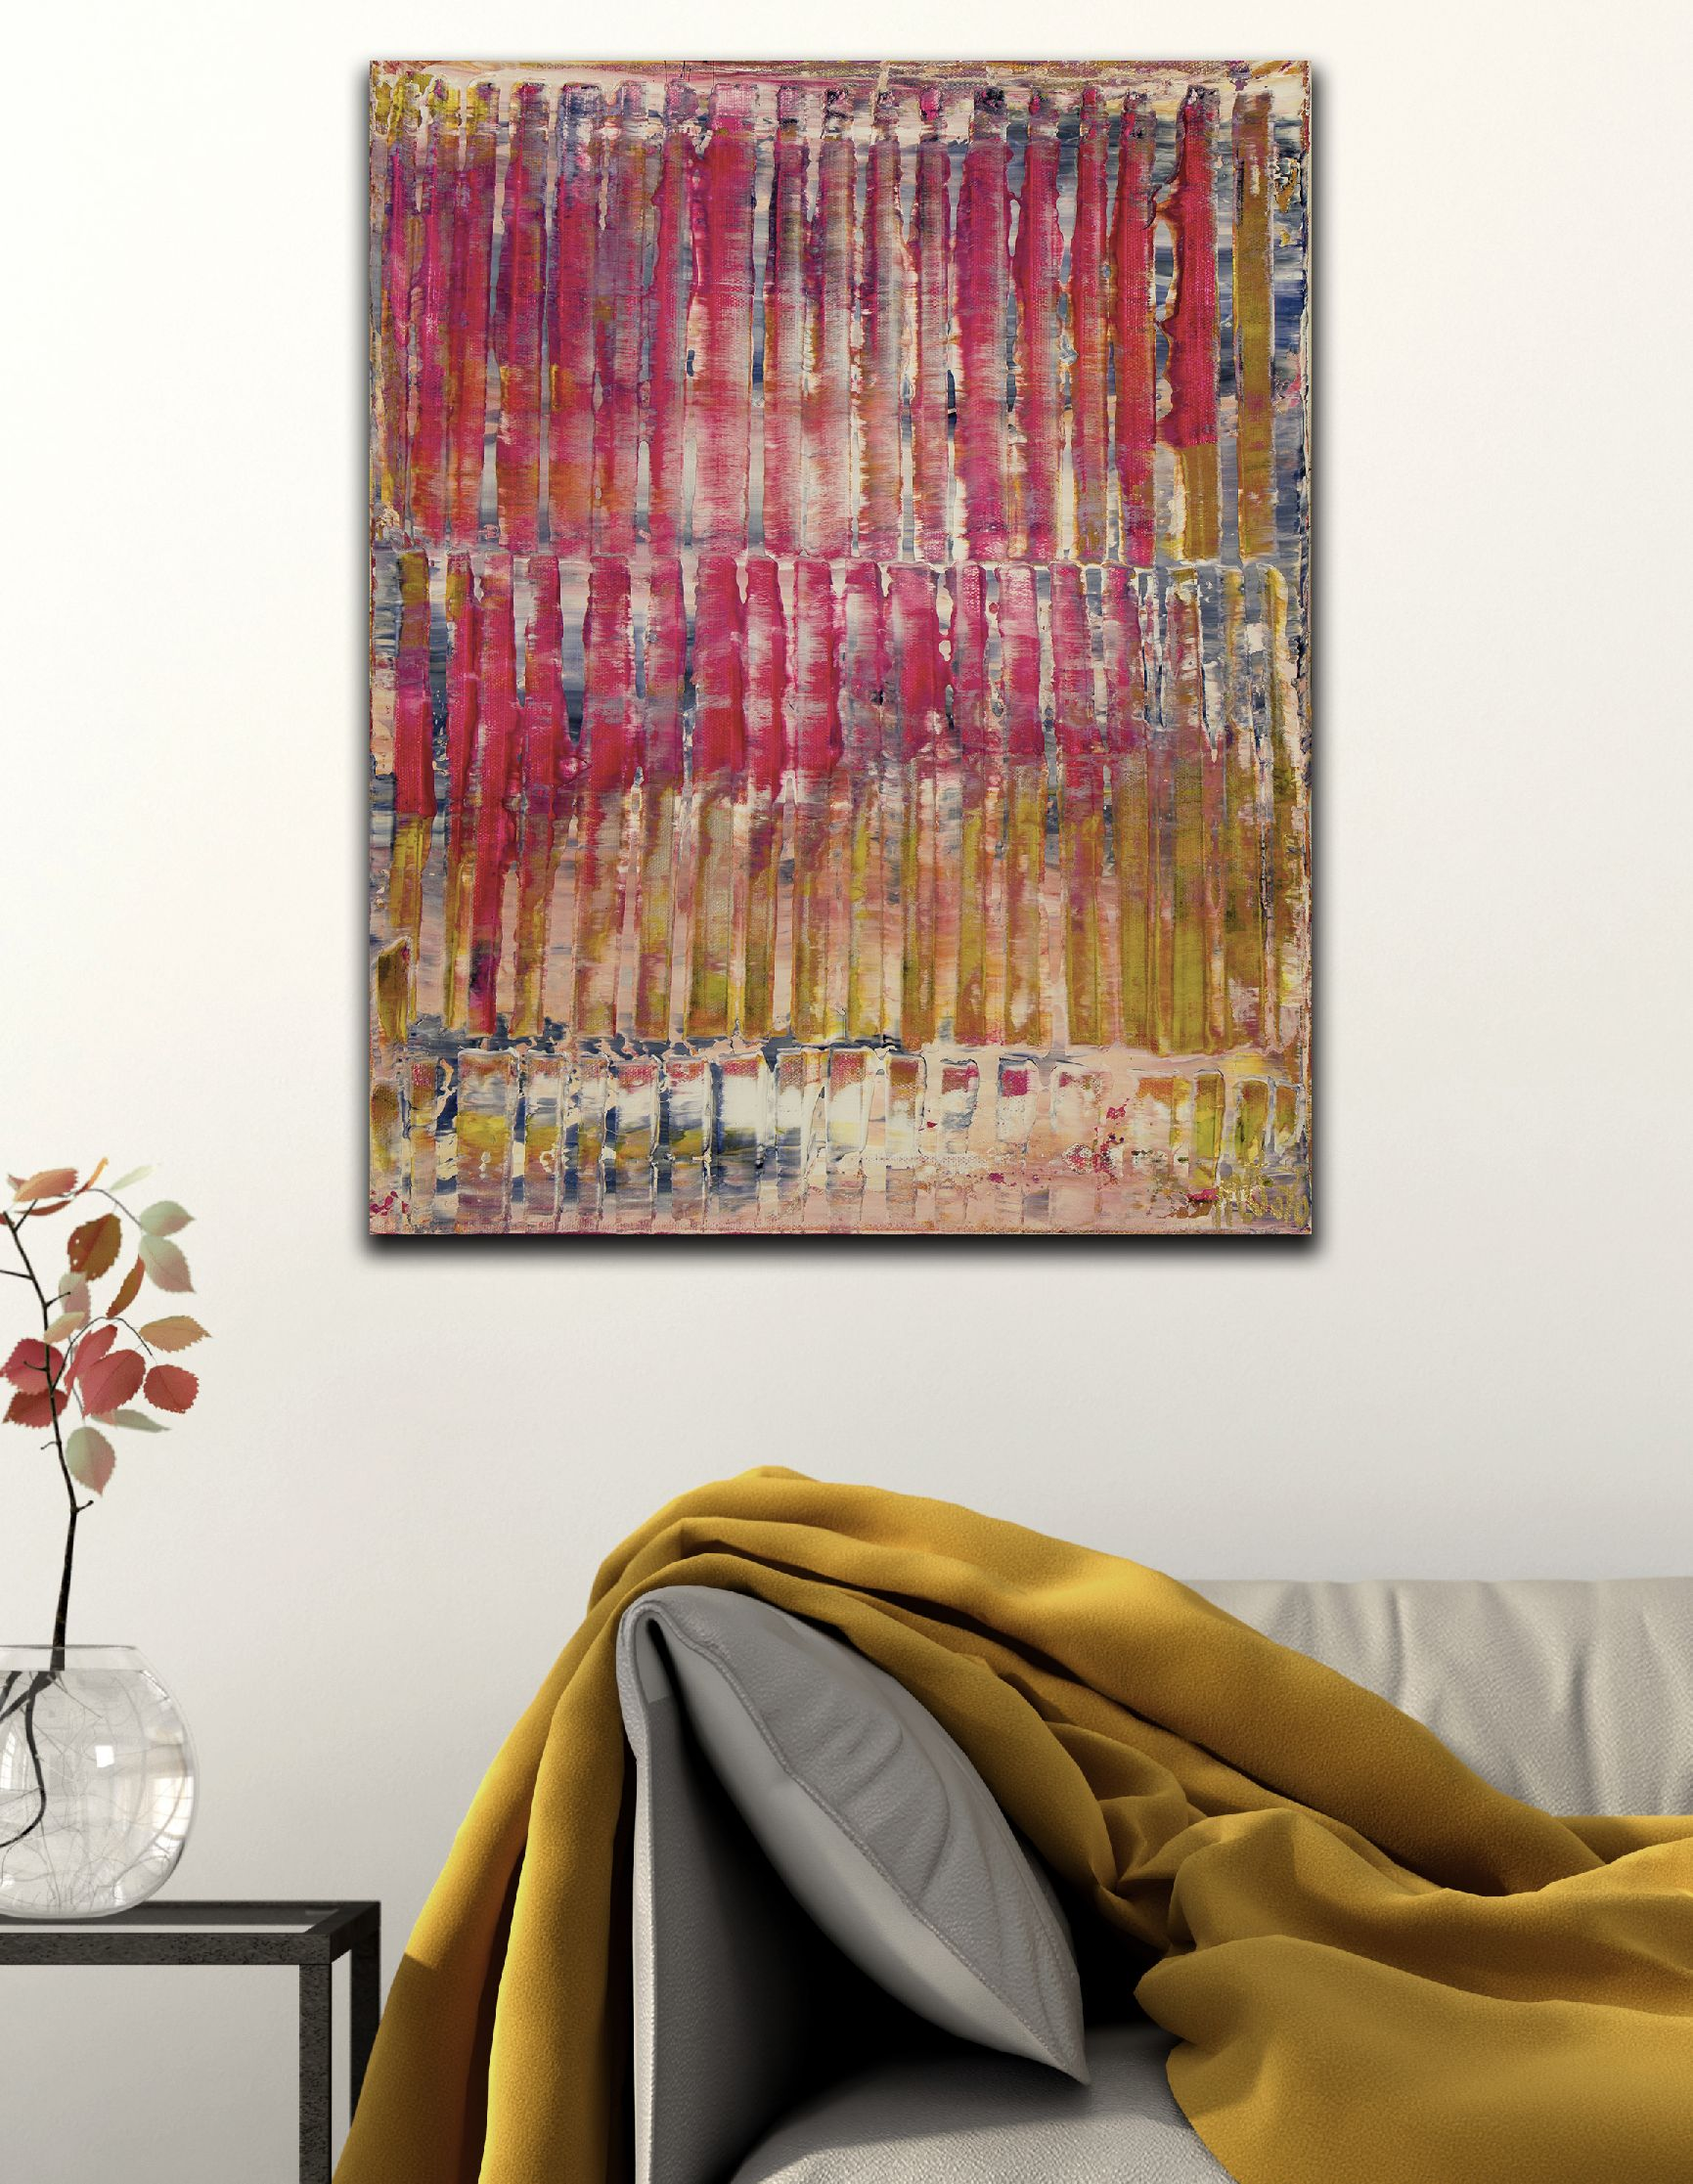 Room View - Pink Spectra and Lights 3 (2020) by Nestor Toro